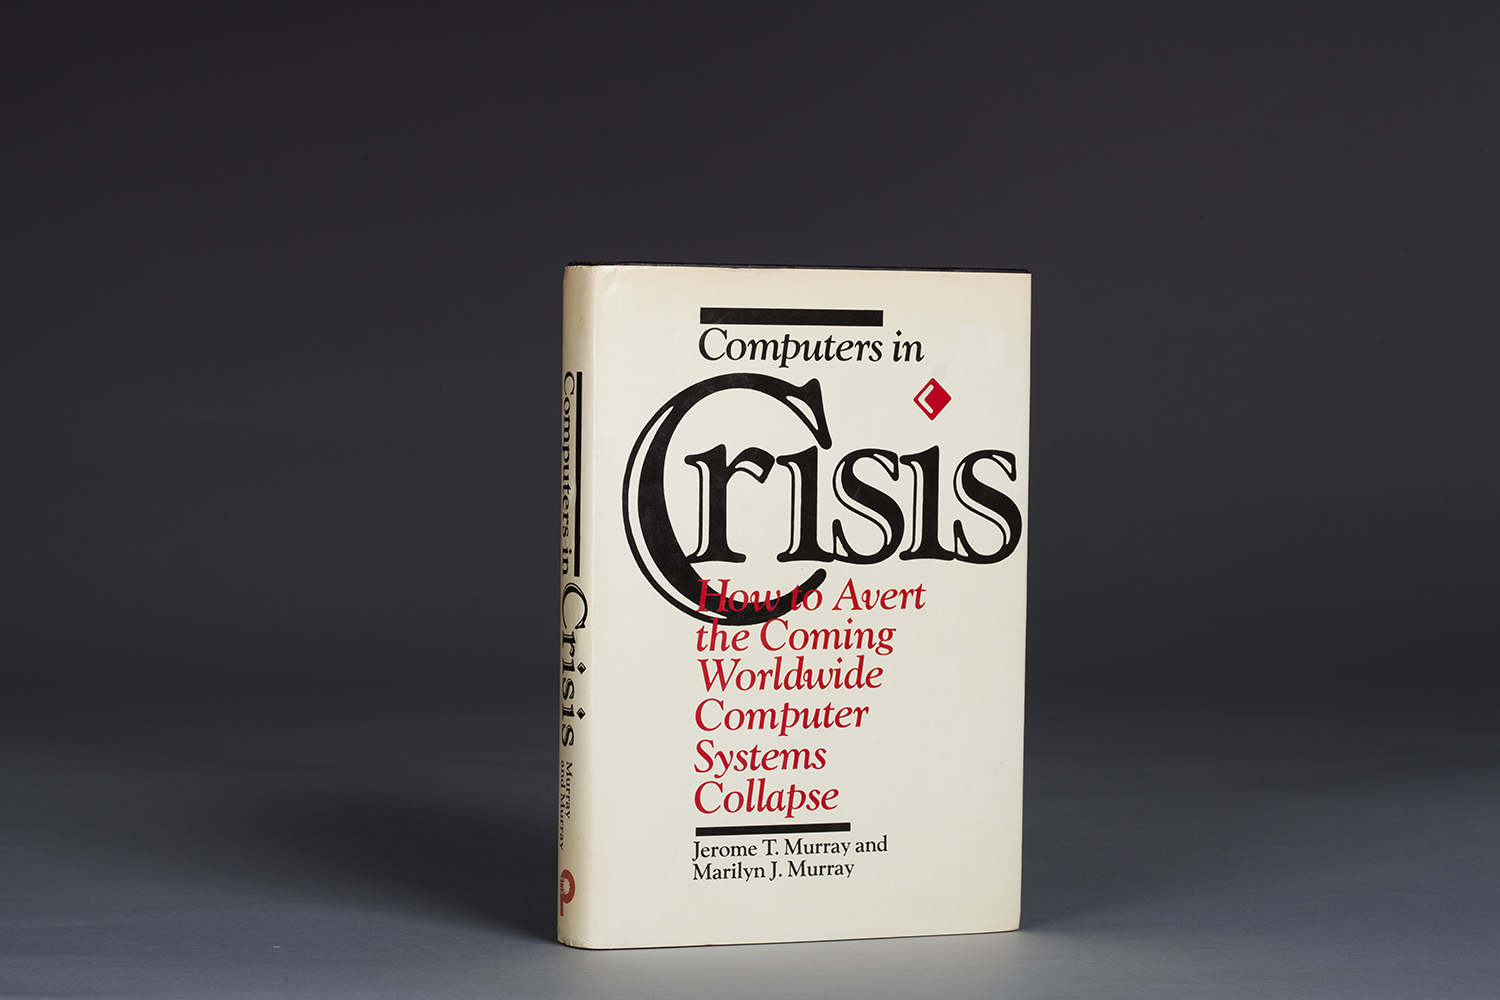 Computers in Crisis  by Jerome T. Murray & Marilyn J. Murray (1984)was the first book published about the computer date problem later known as Y2K.